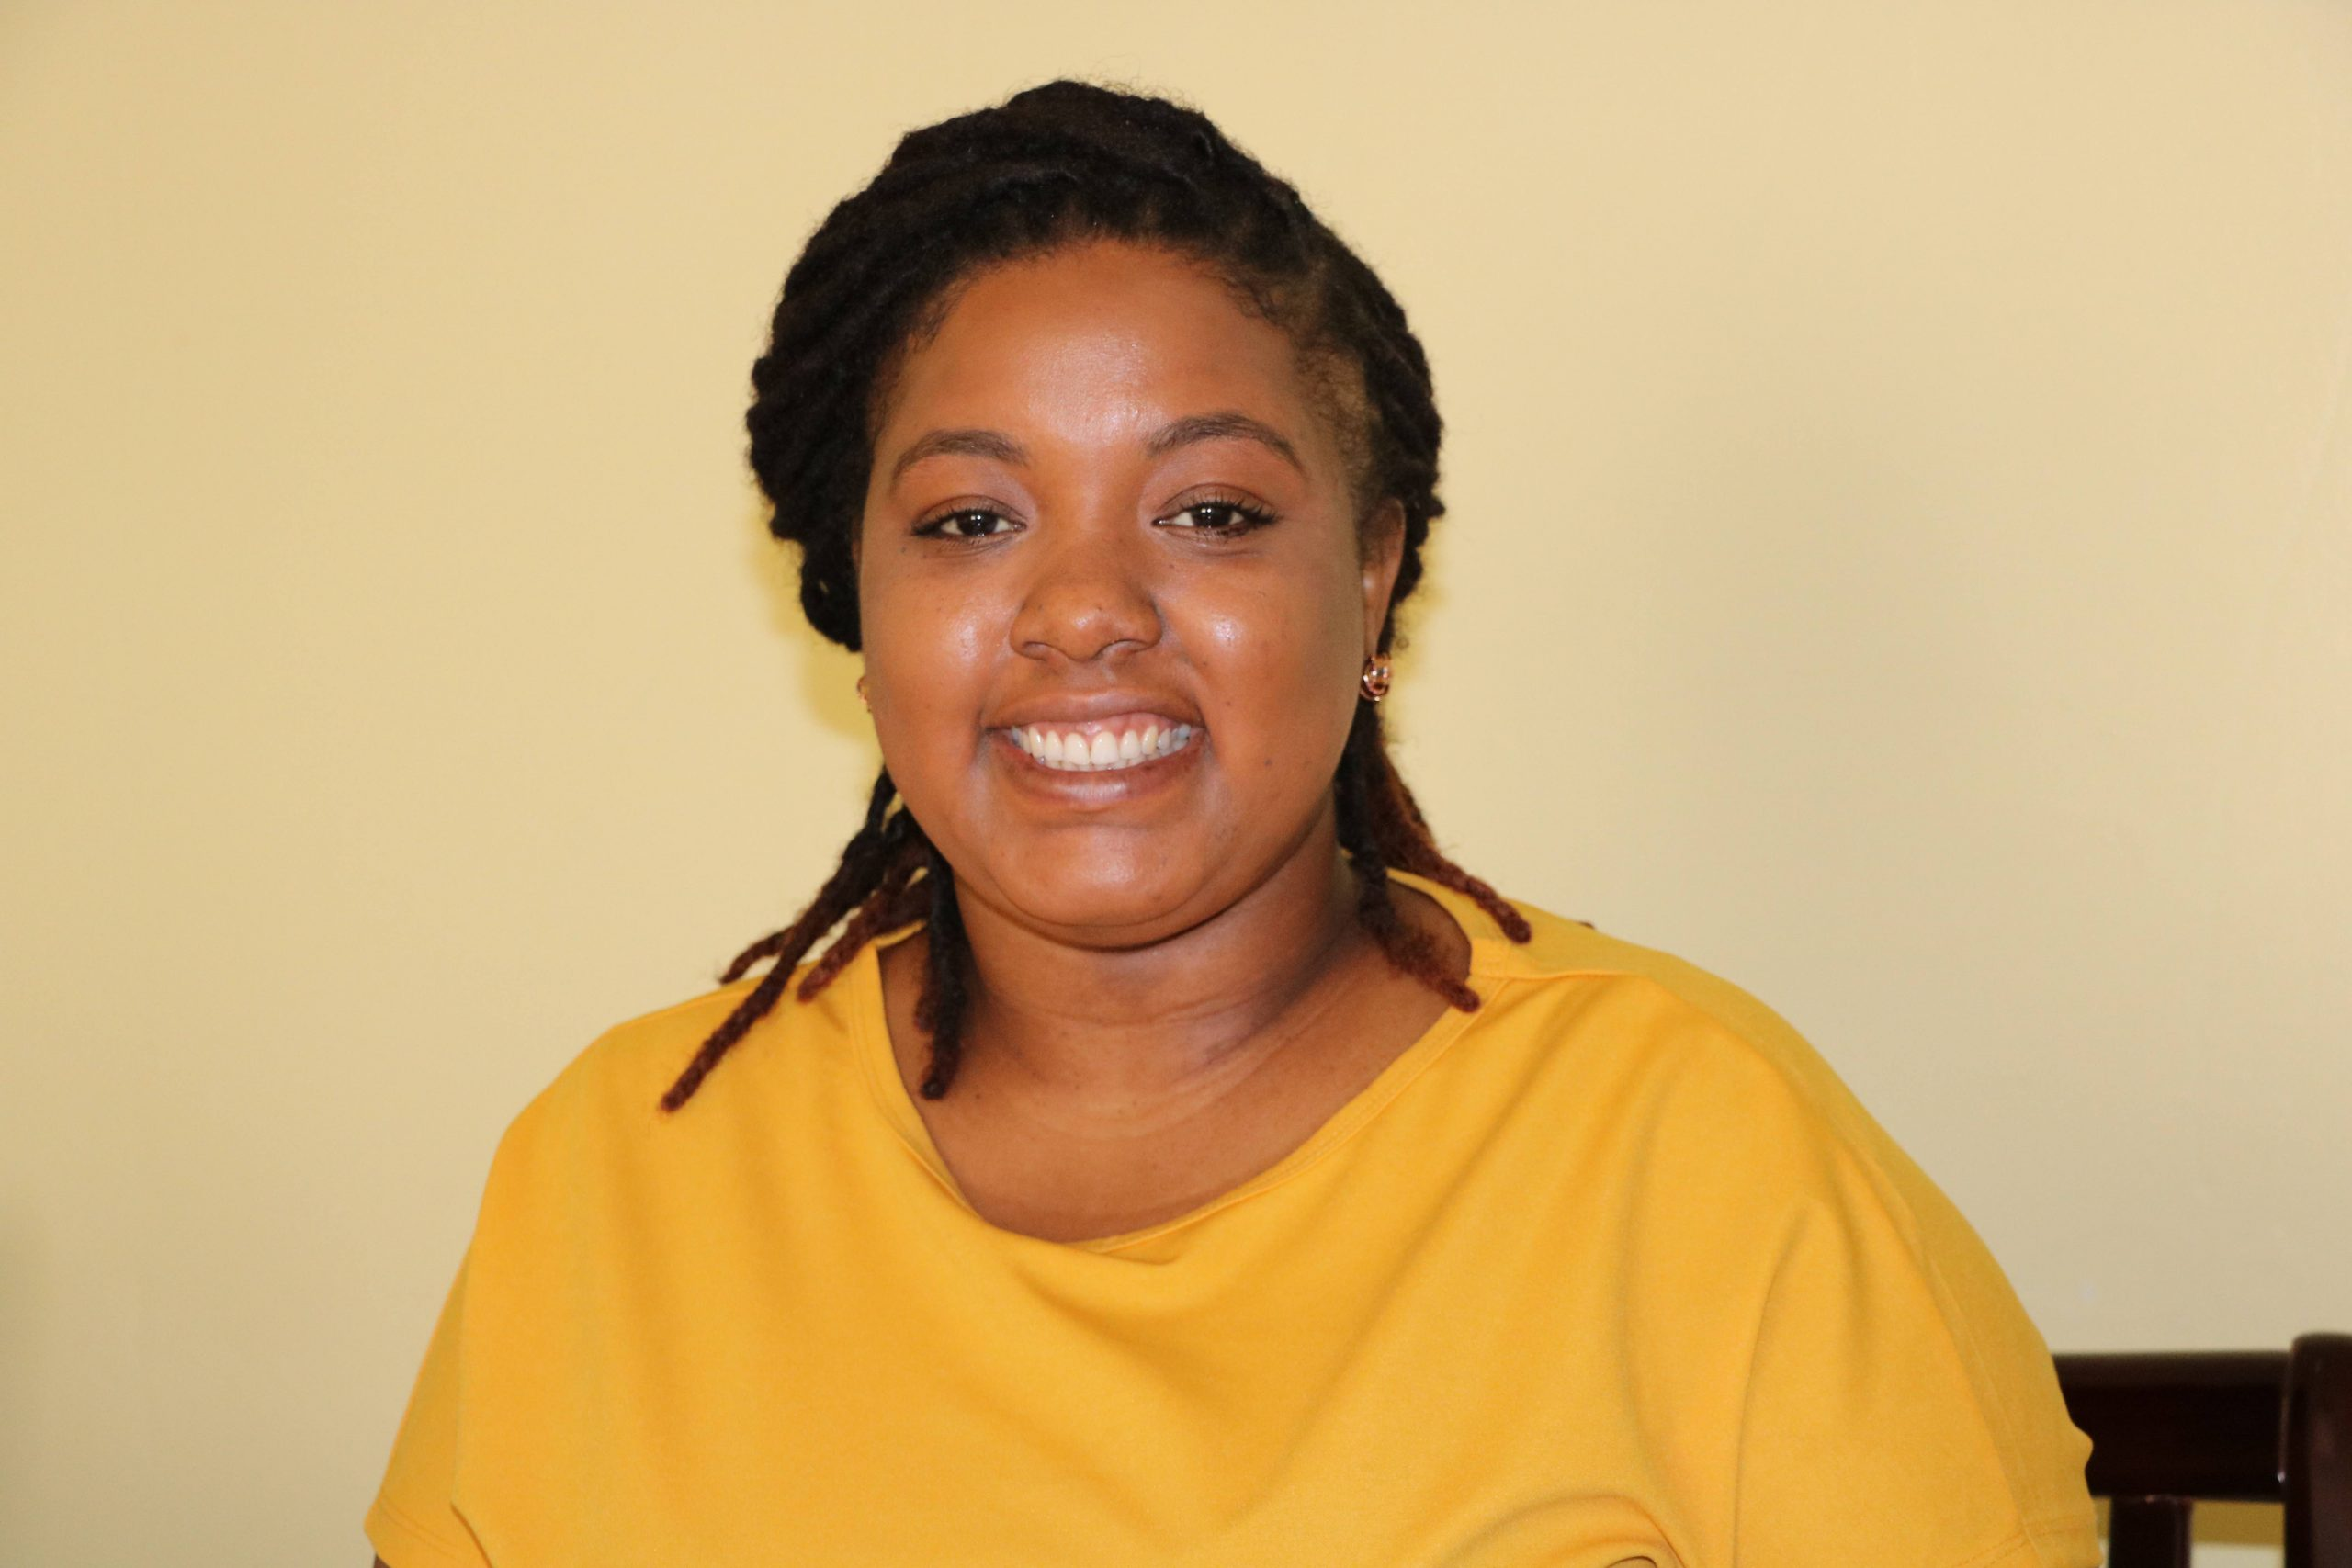 Ms. Terysia Herbert, Education and Prevention Officer at the Health Promotion Unit in the Ministry of Health in the Nevis Island Administration